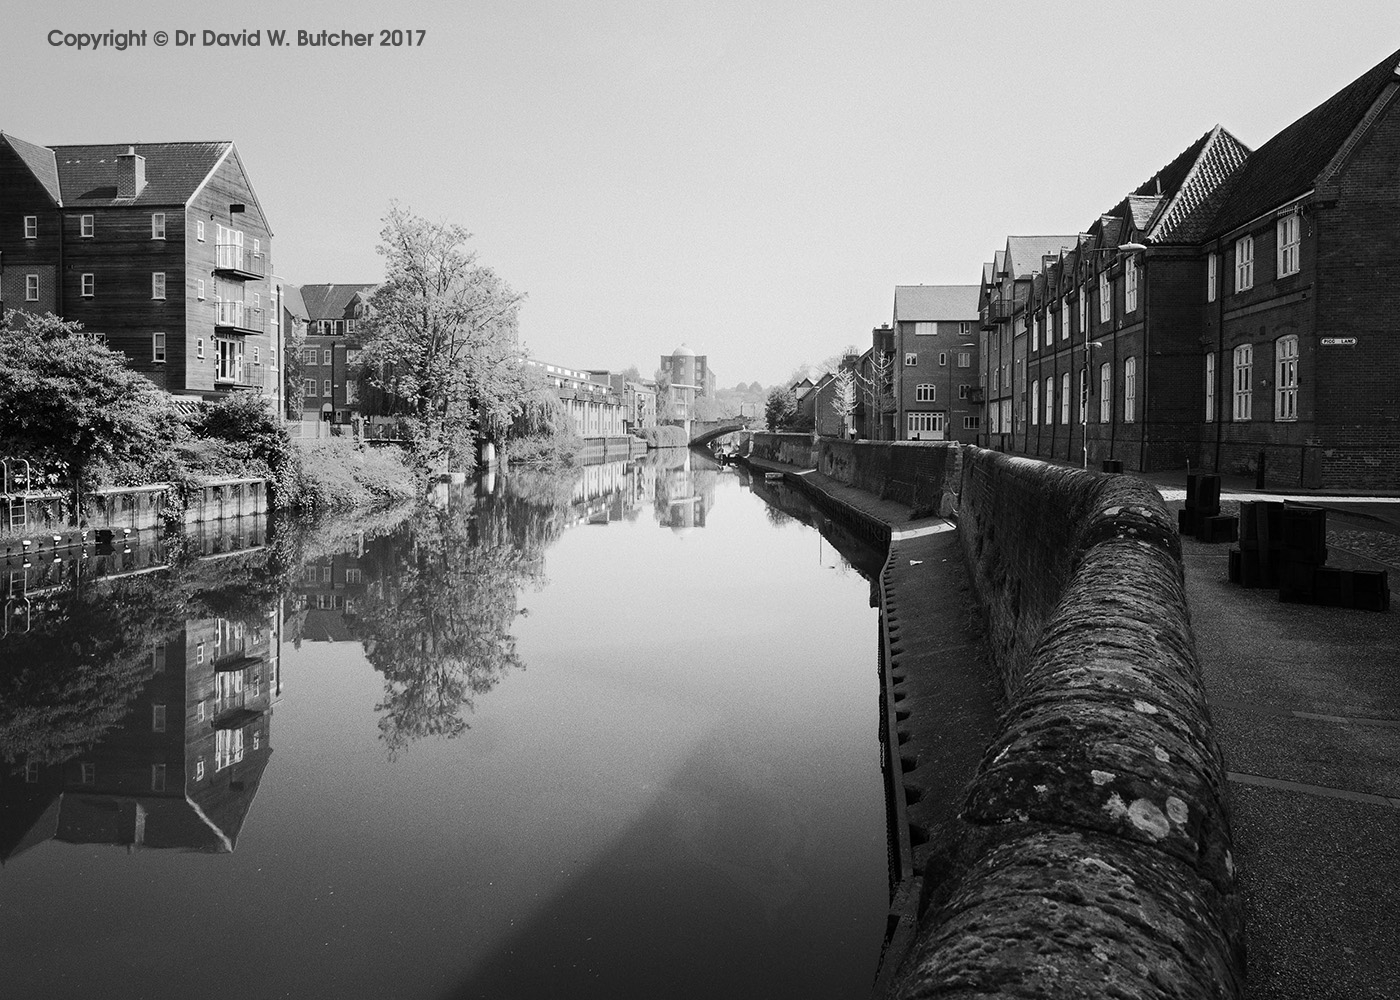 River Wensum Reflections from Quay Side Norwich, Norfolk